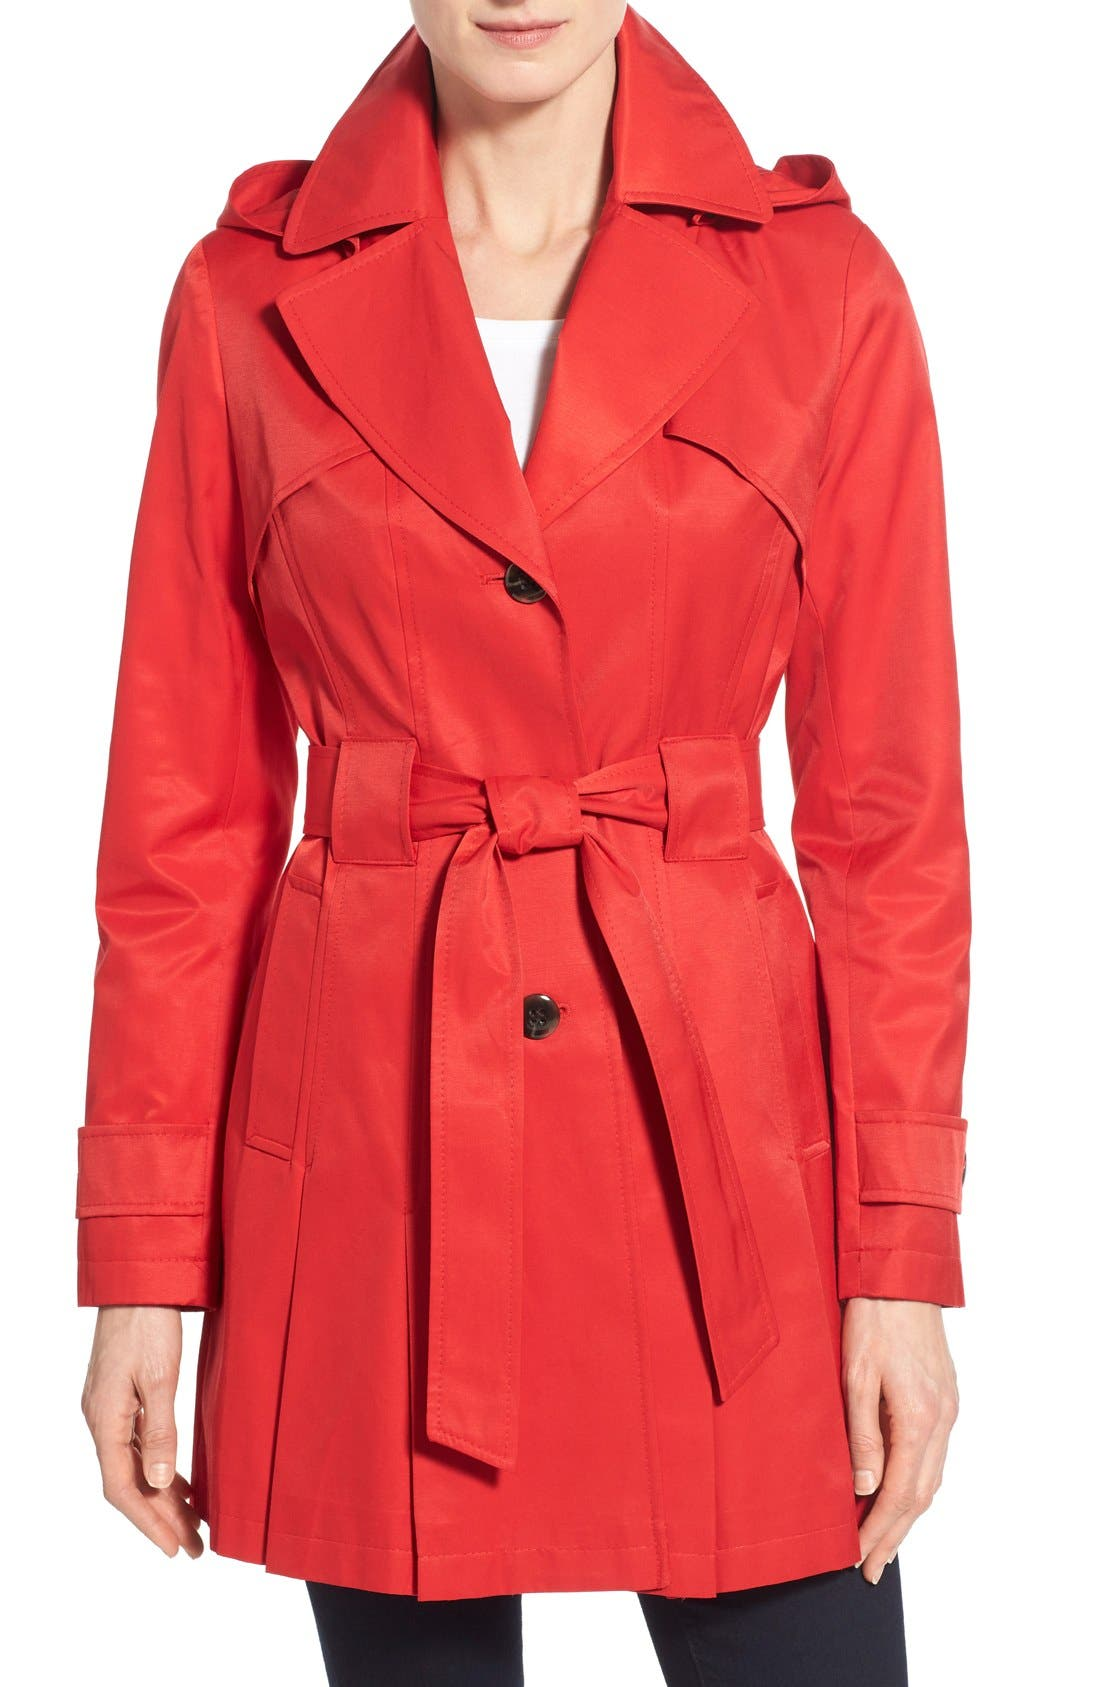 'Scarpa' Hooded Single Breasted Trench Coat,                             Main thumbnail 7, color,